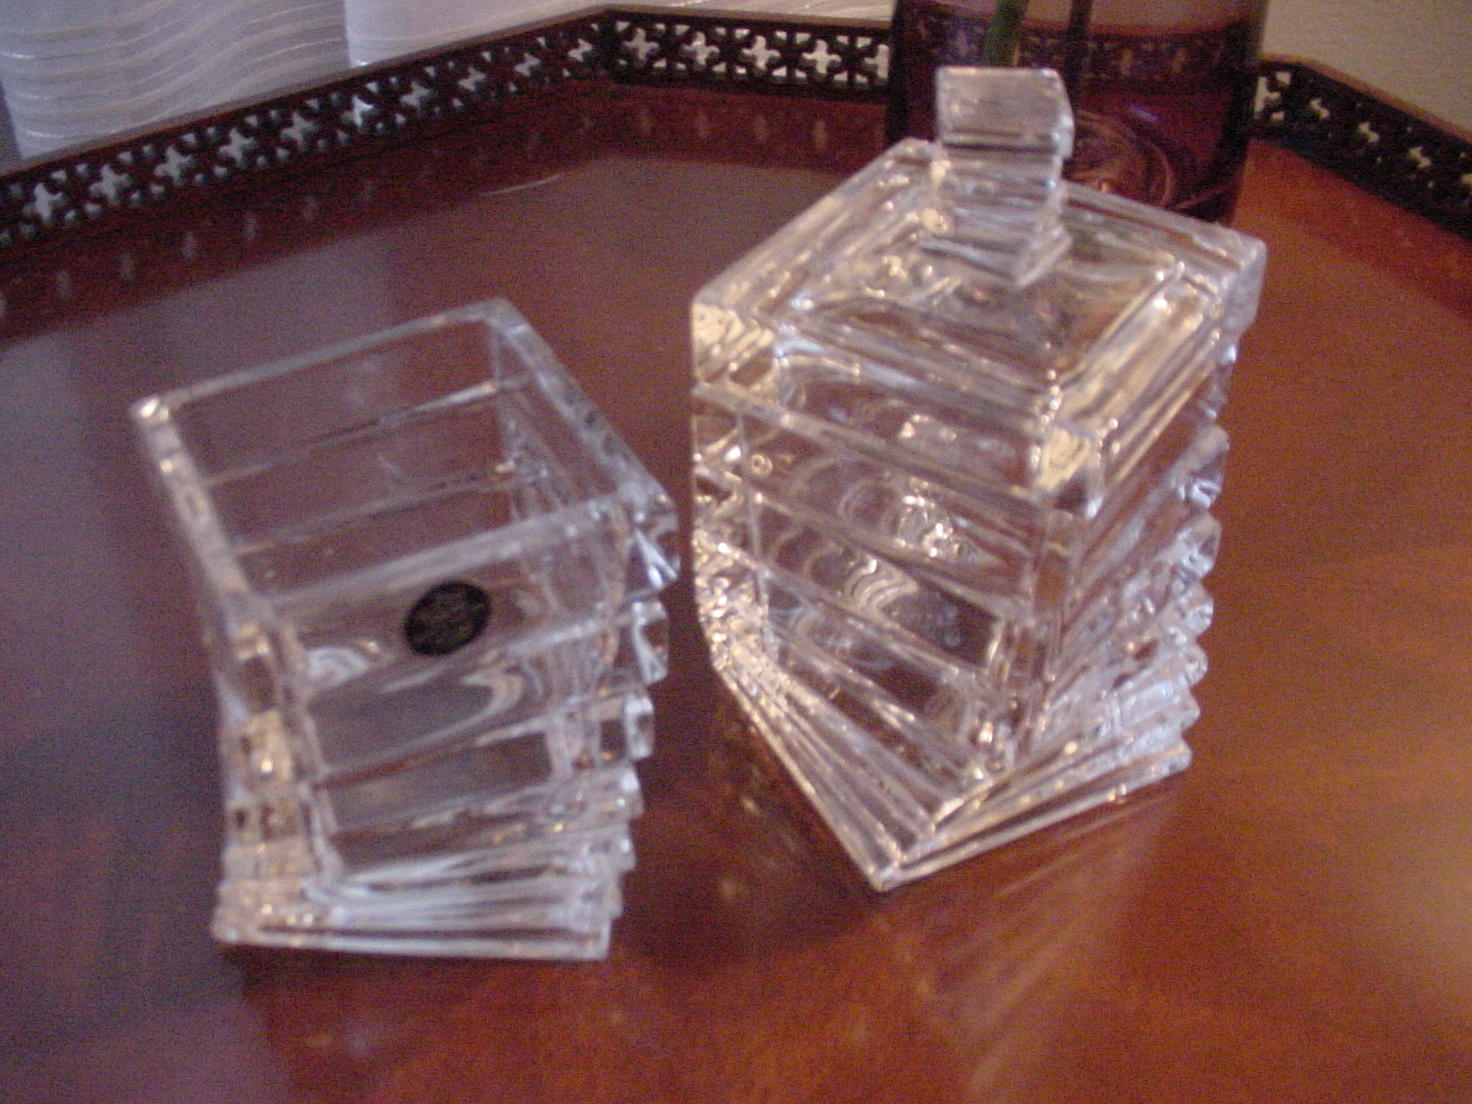 Rosenthal Studio-Linie Crystal Twisted, Stepped Jars, 2, One Covered